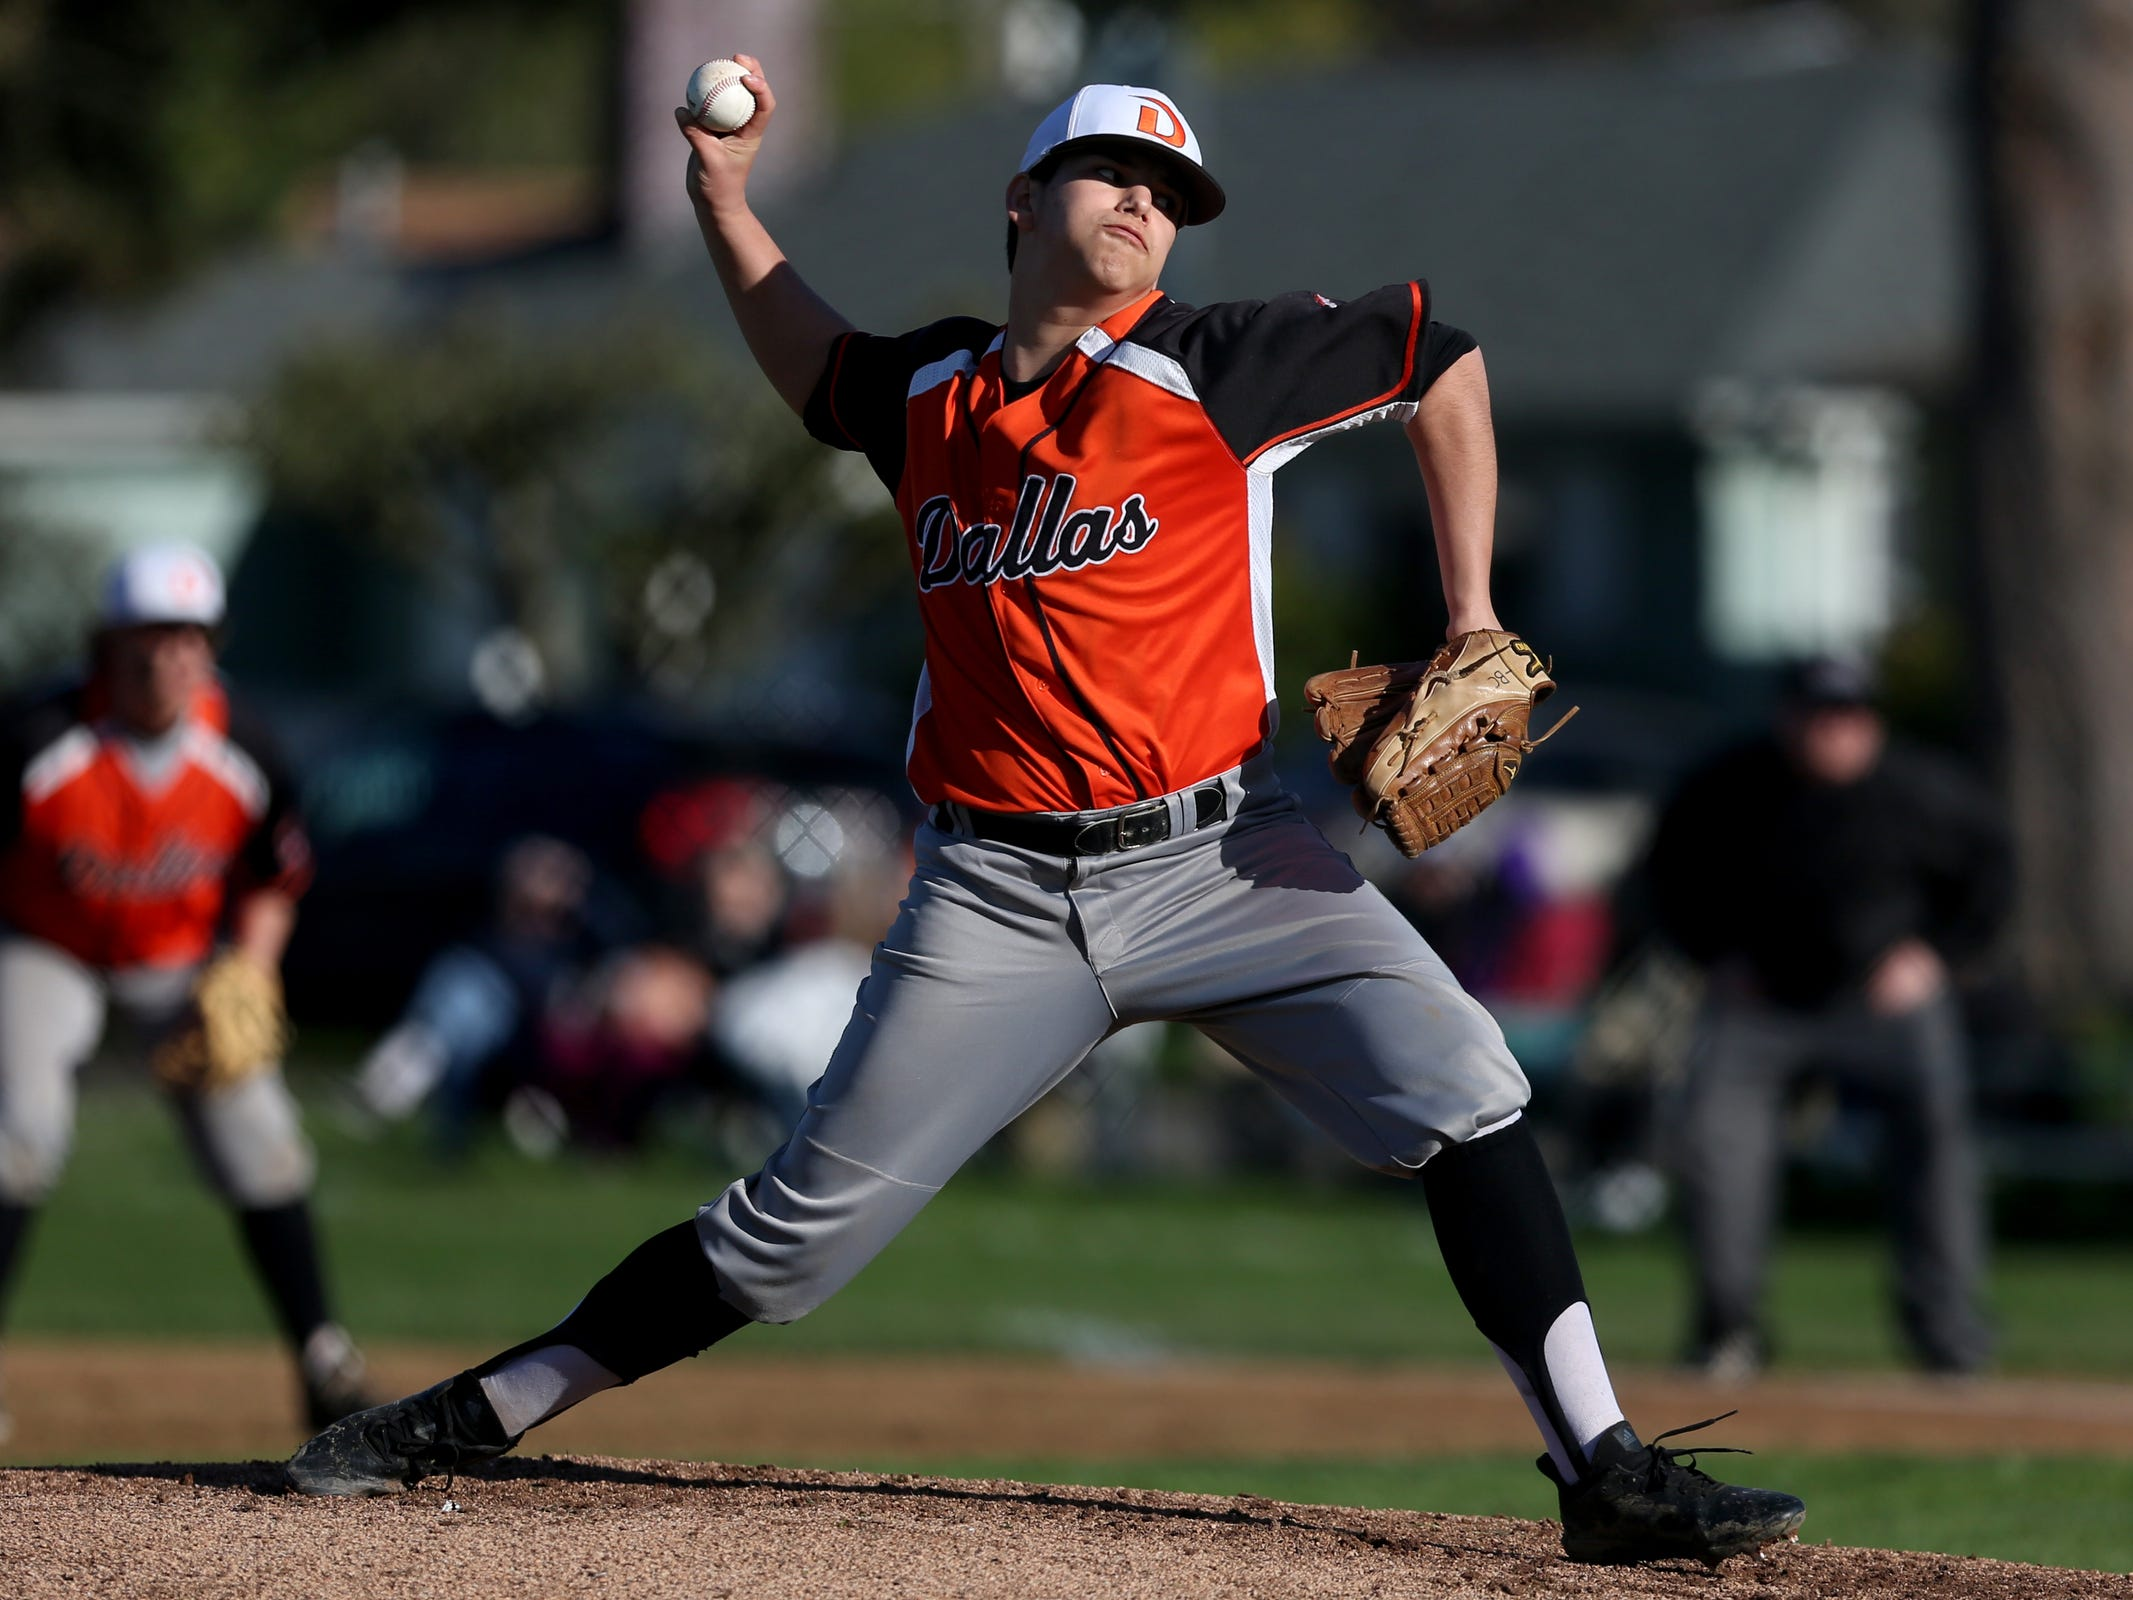 A Dallas player pitches in the Dallas vs. North Salem baseball game in Salem on April 12, 2019.